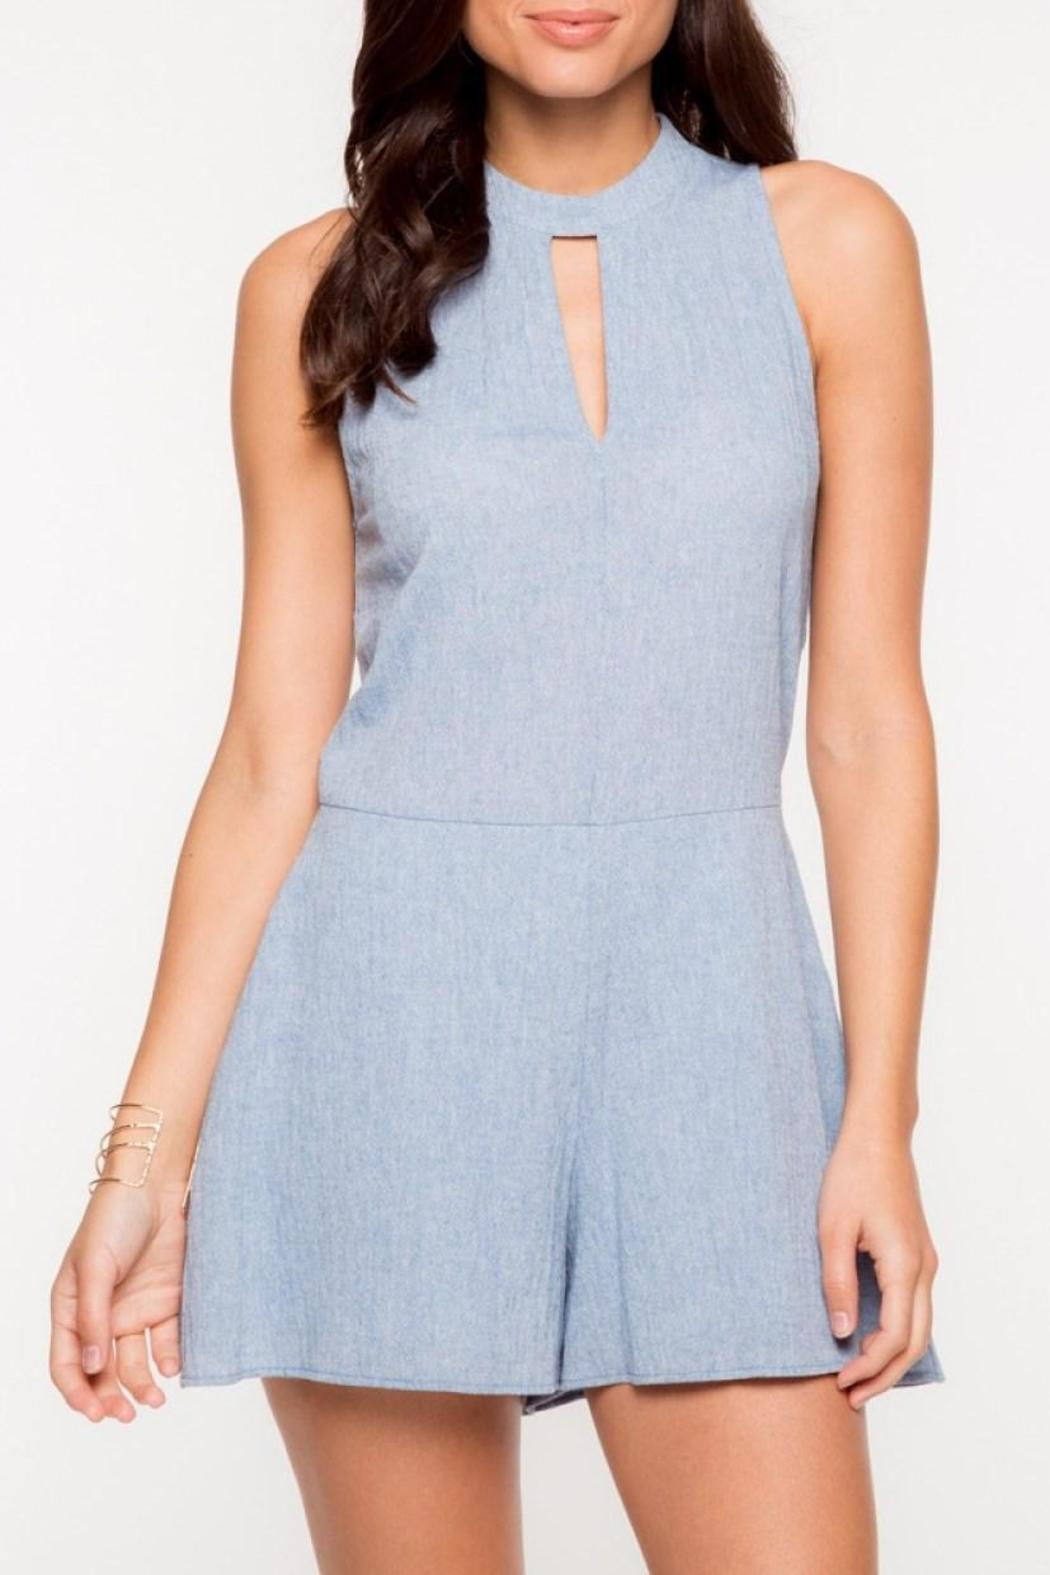 Everly Blue Kaity Romper - Main Image